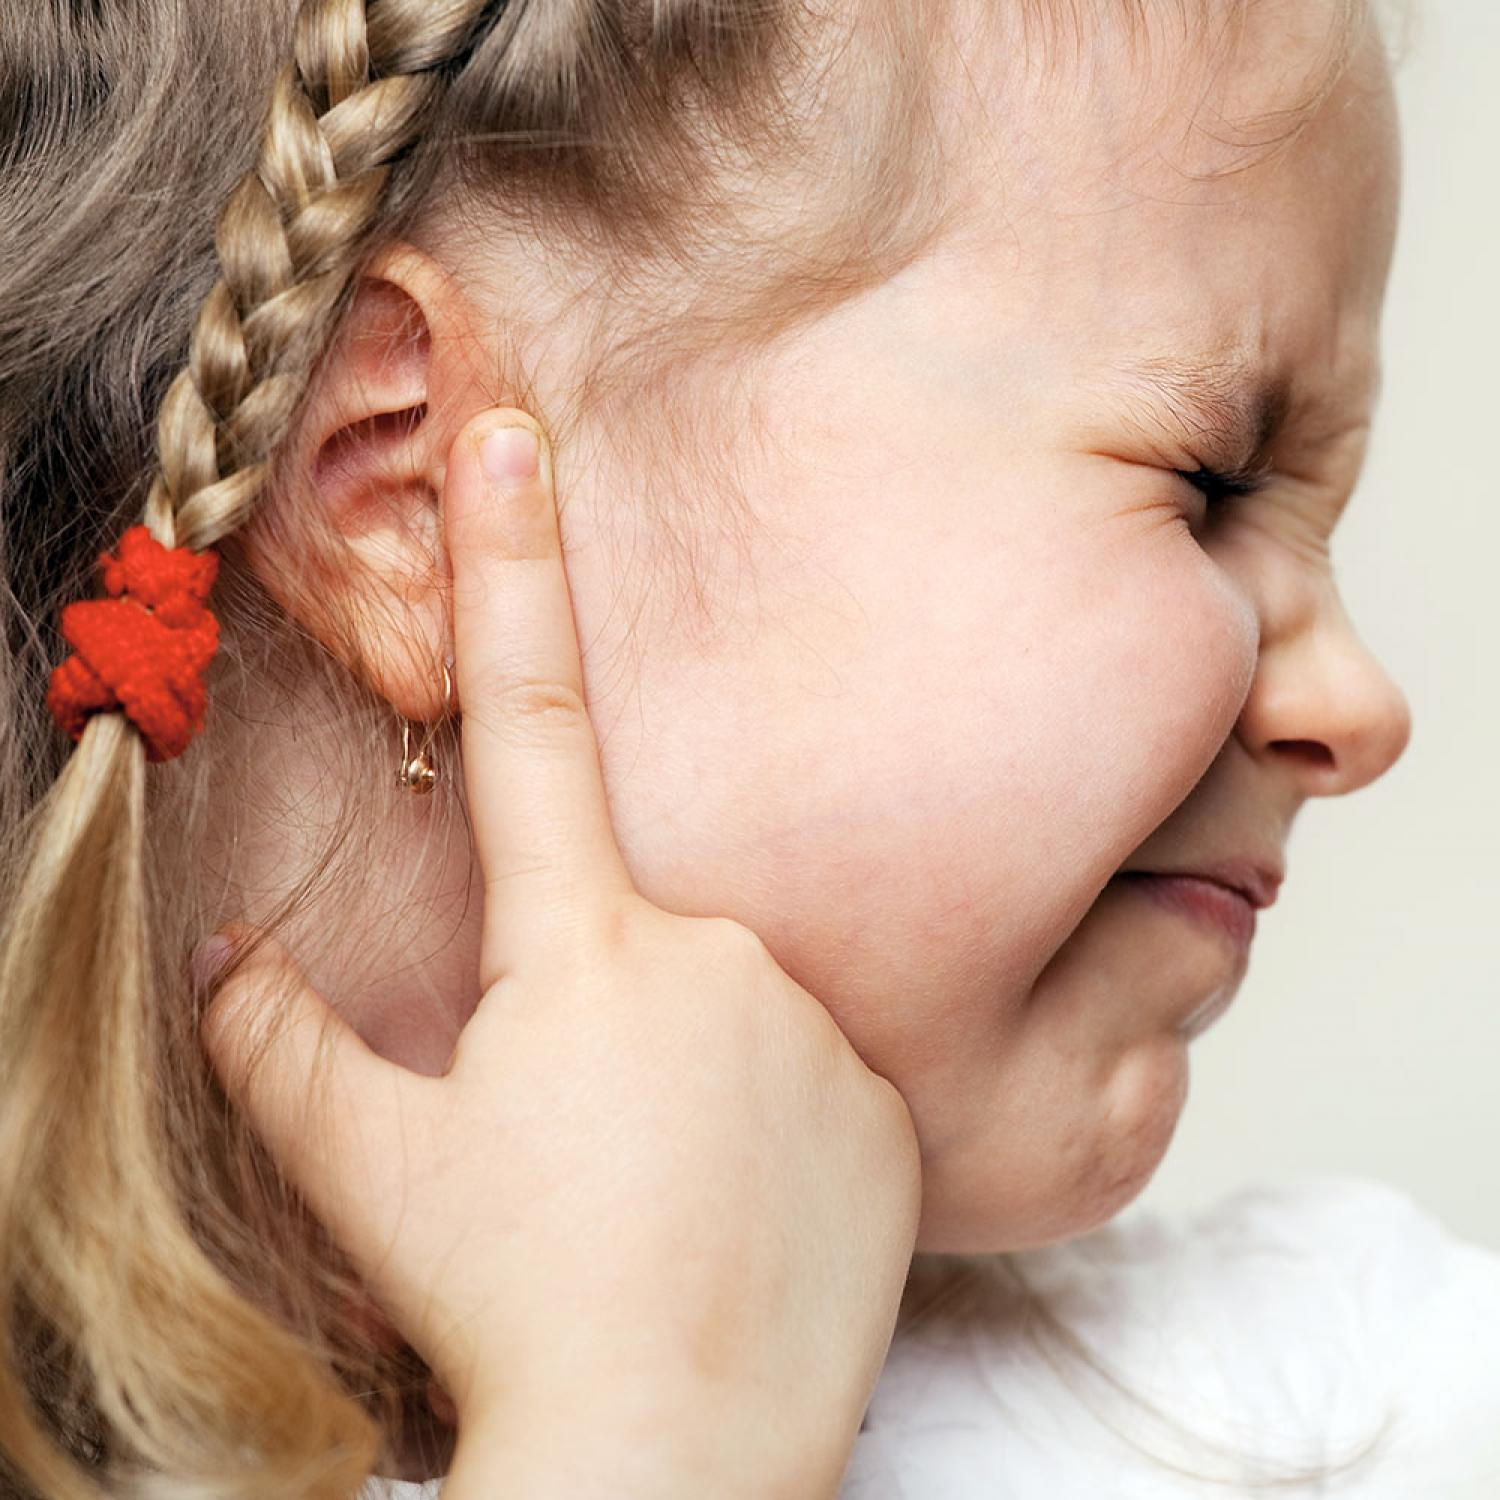 earache in kids